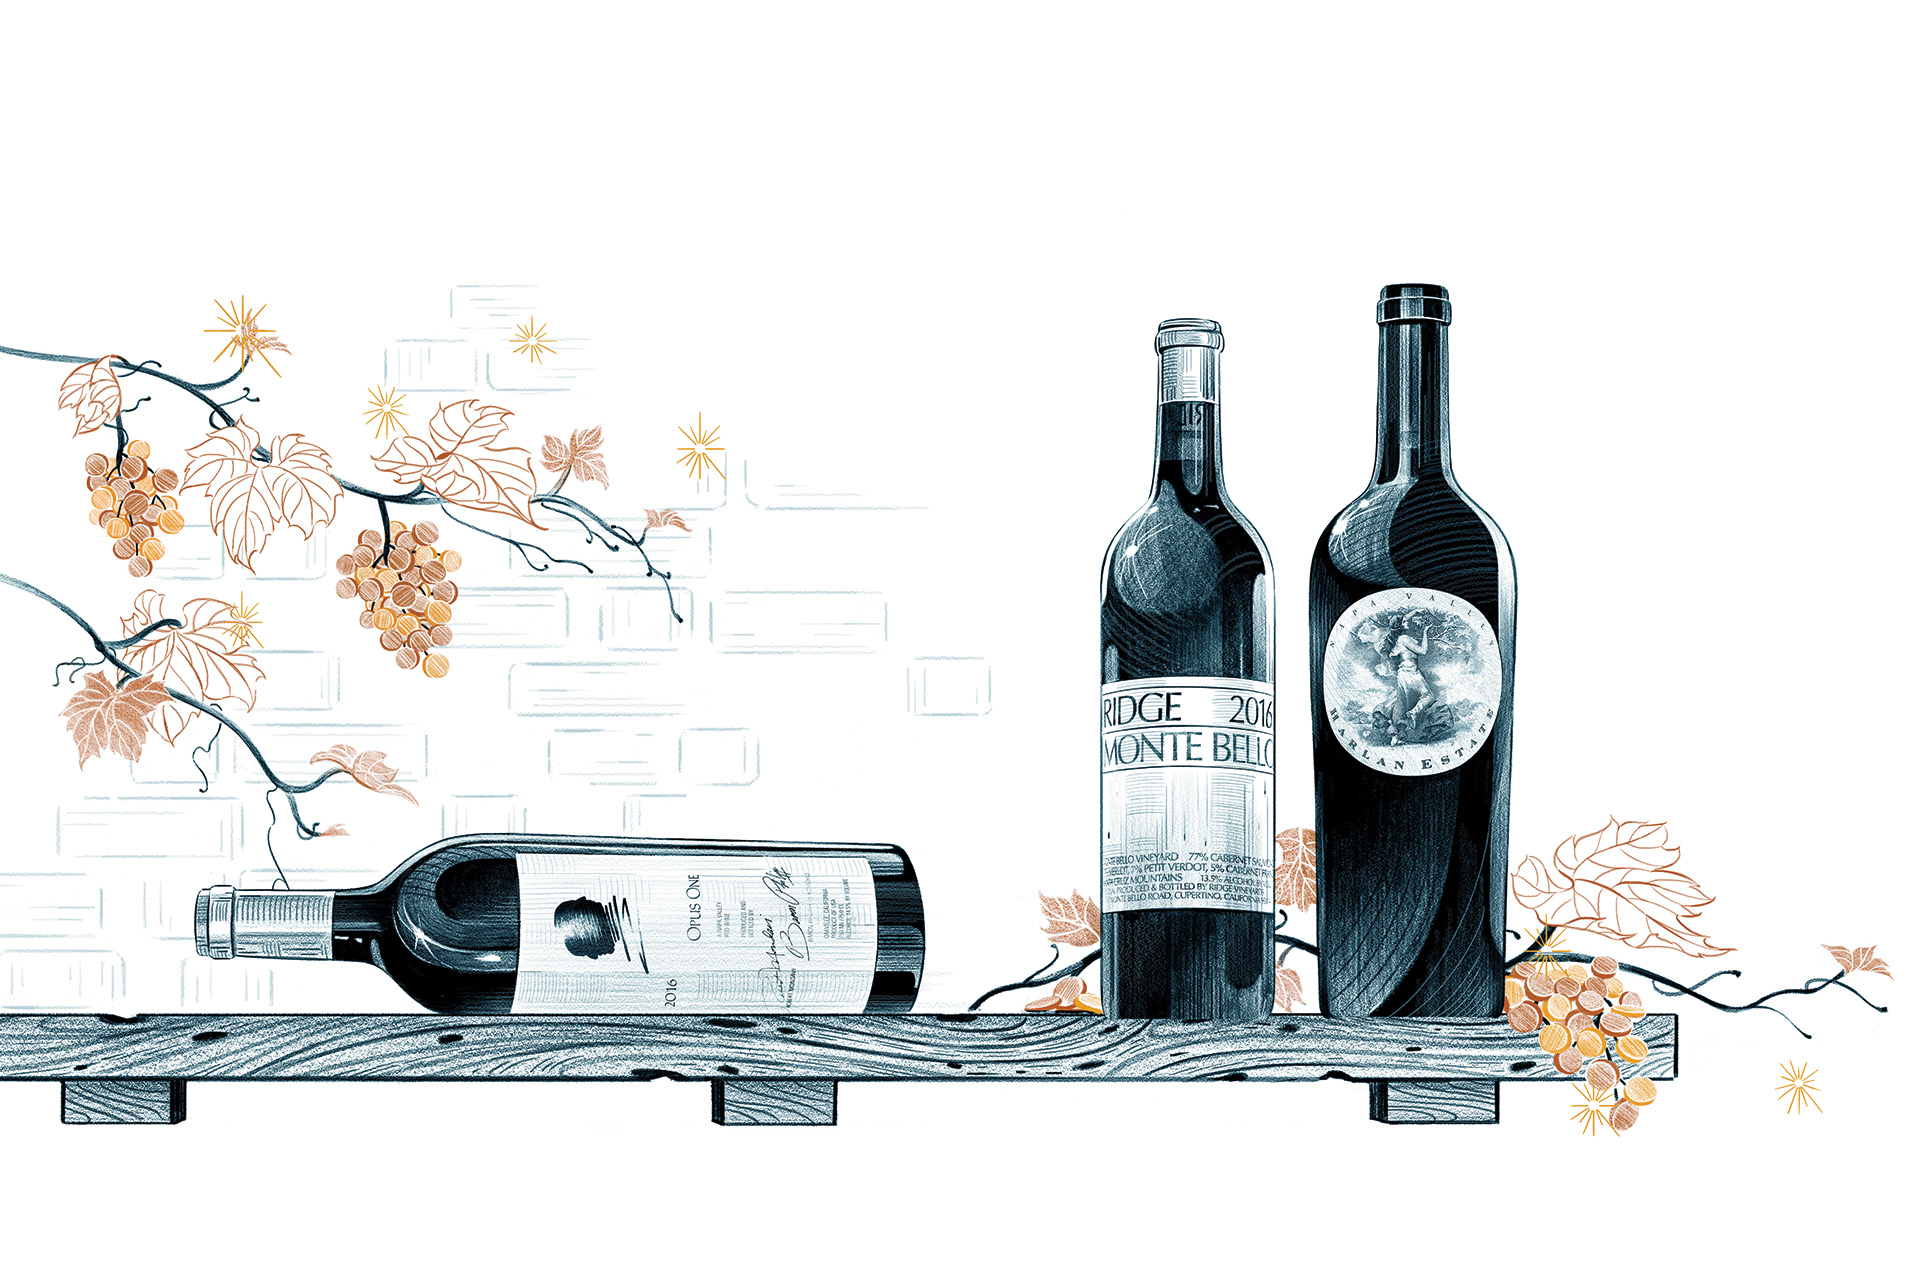 A wine bottle on its side with two wine bottles next to it